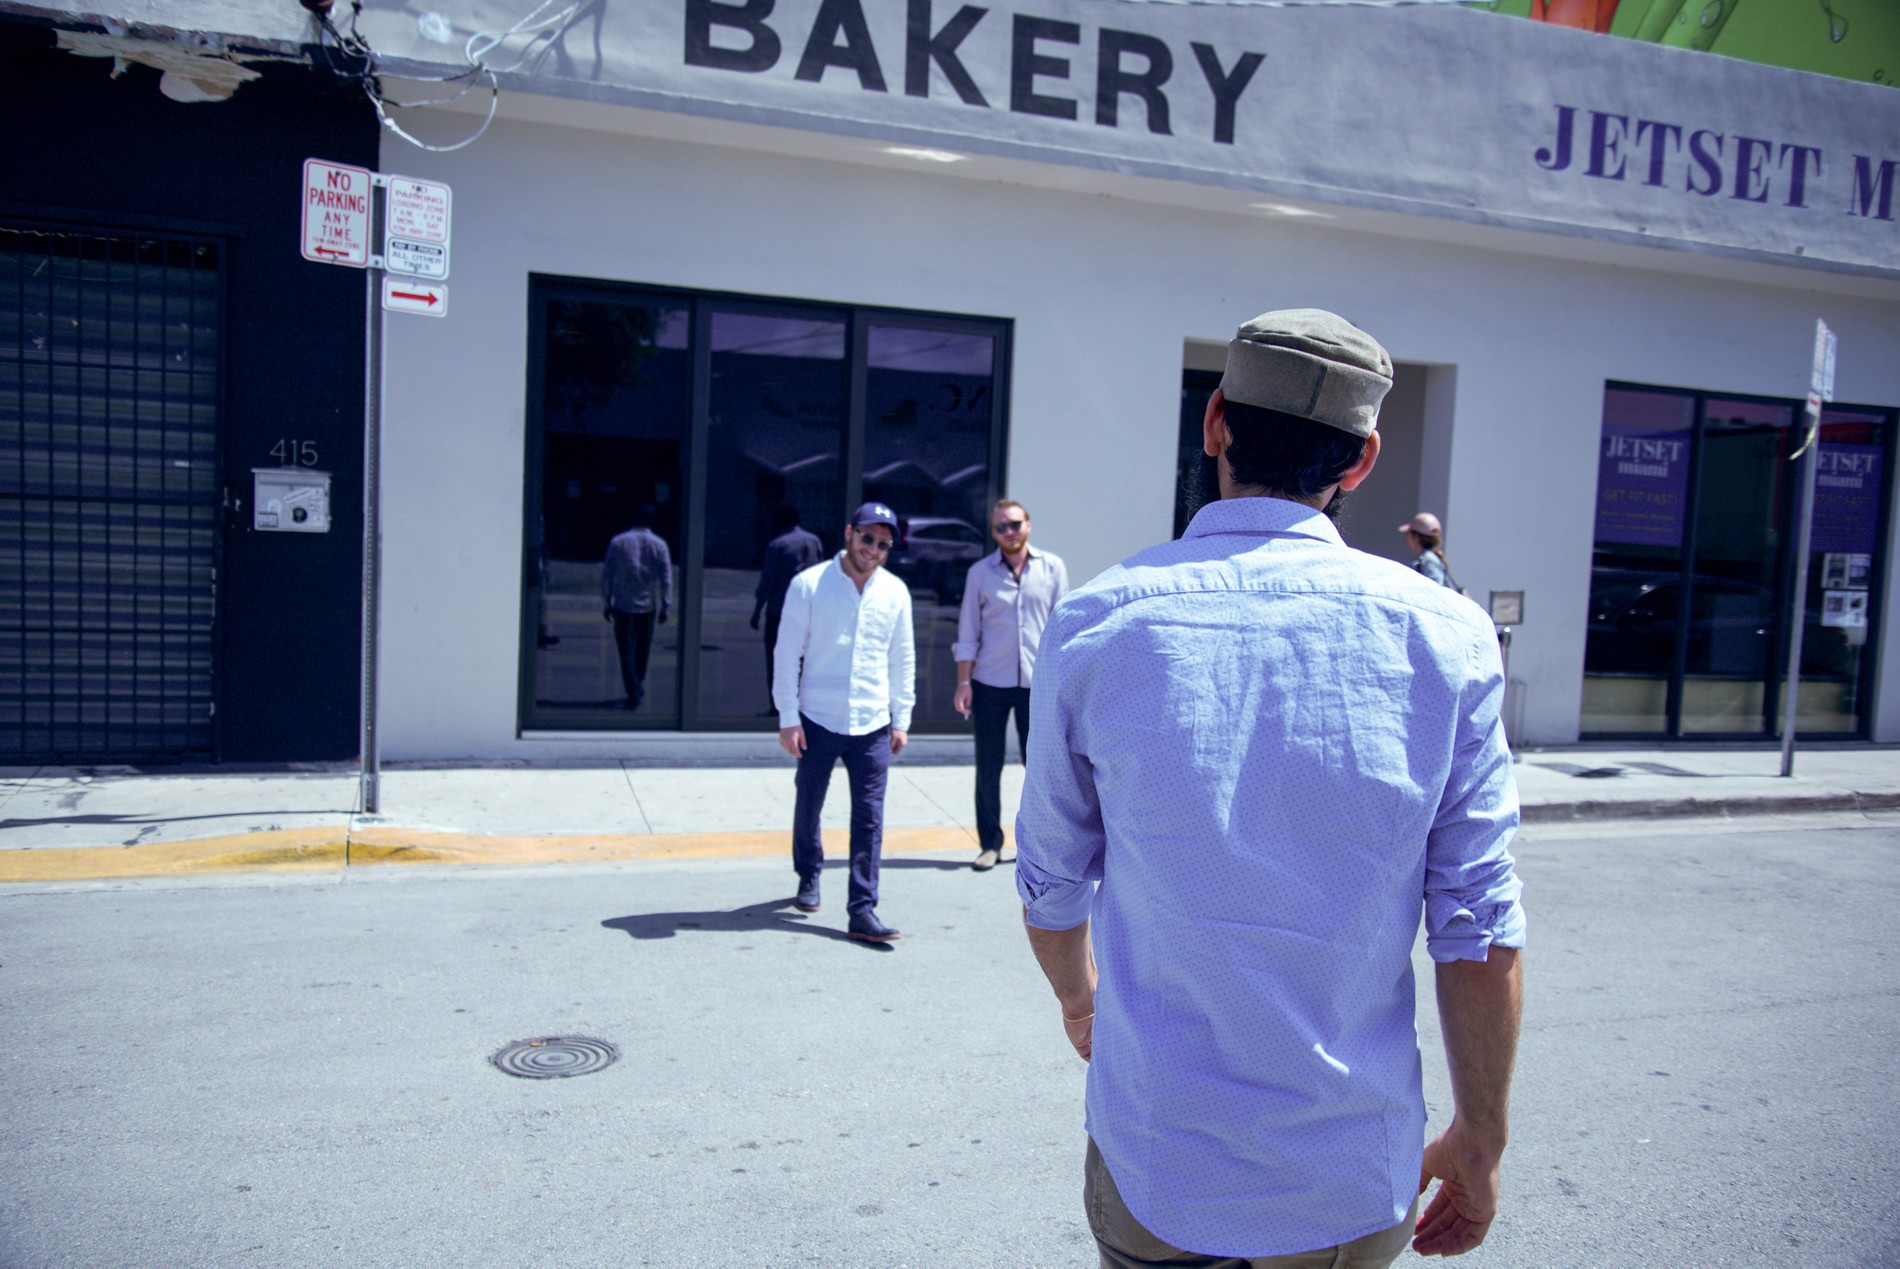 Zak the Baker crossing street